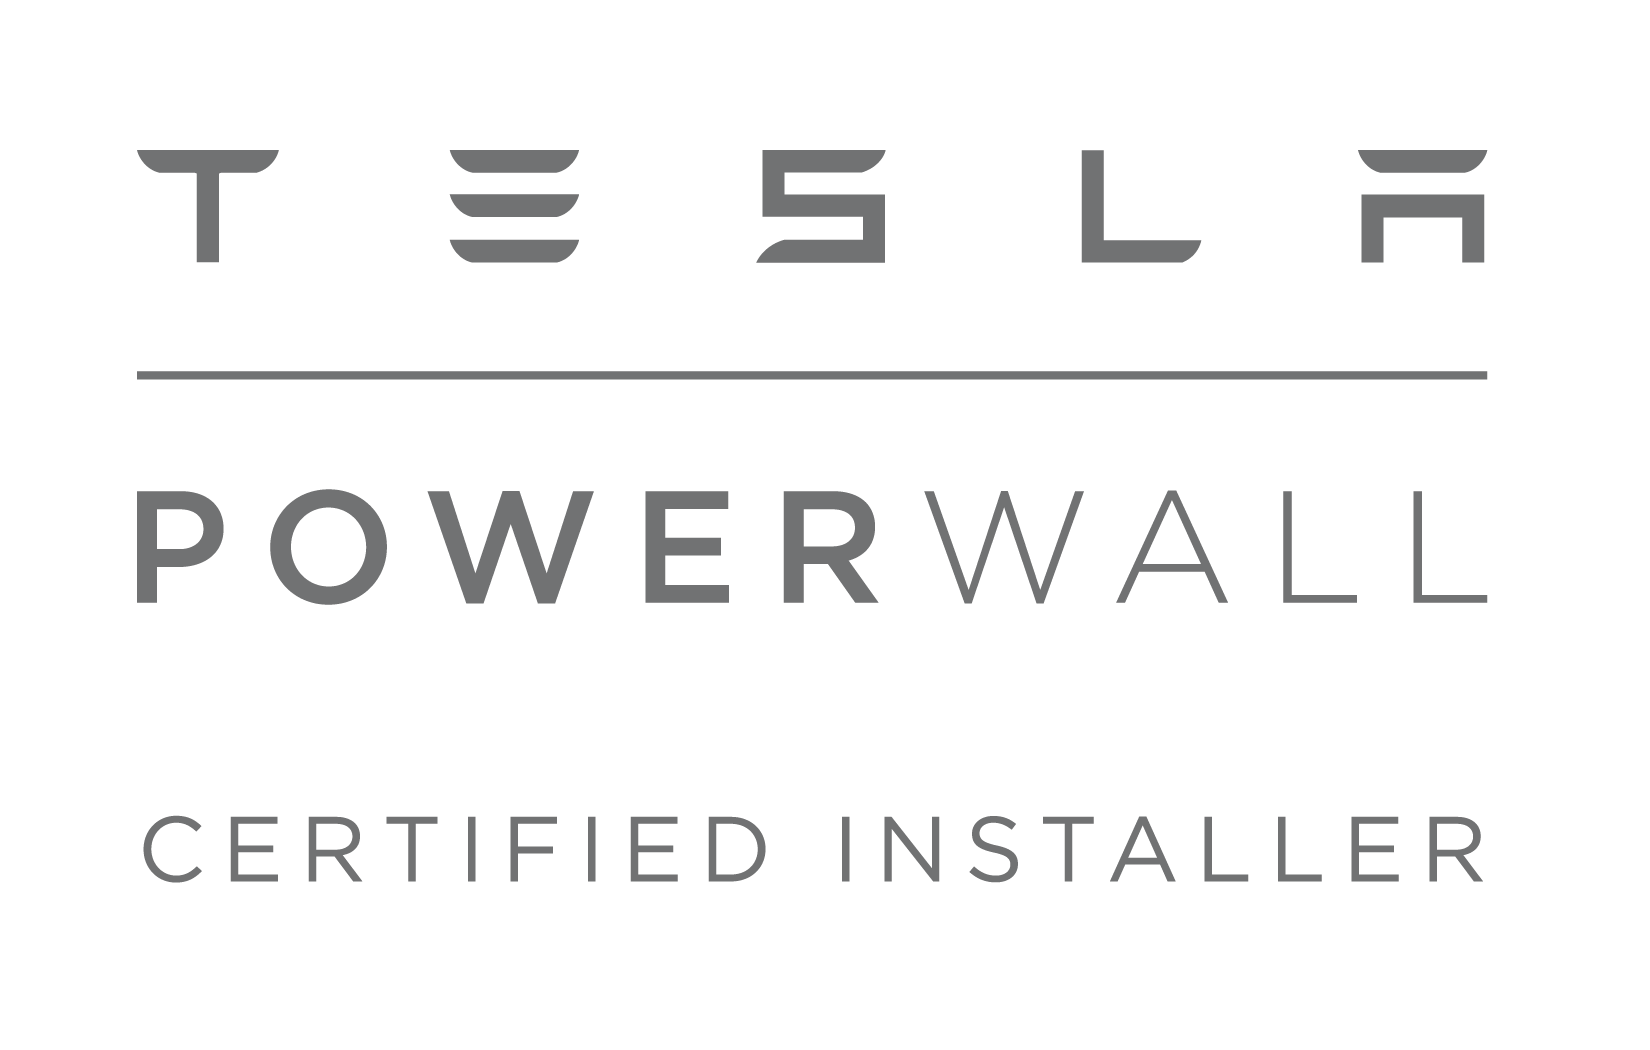 Powerwall Certified Installer